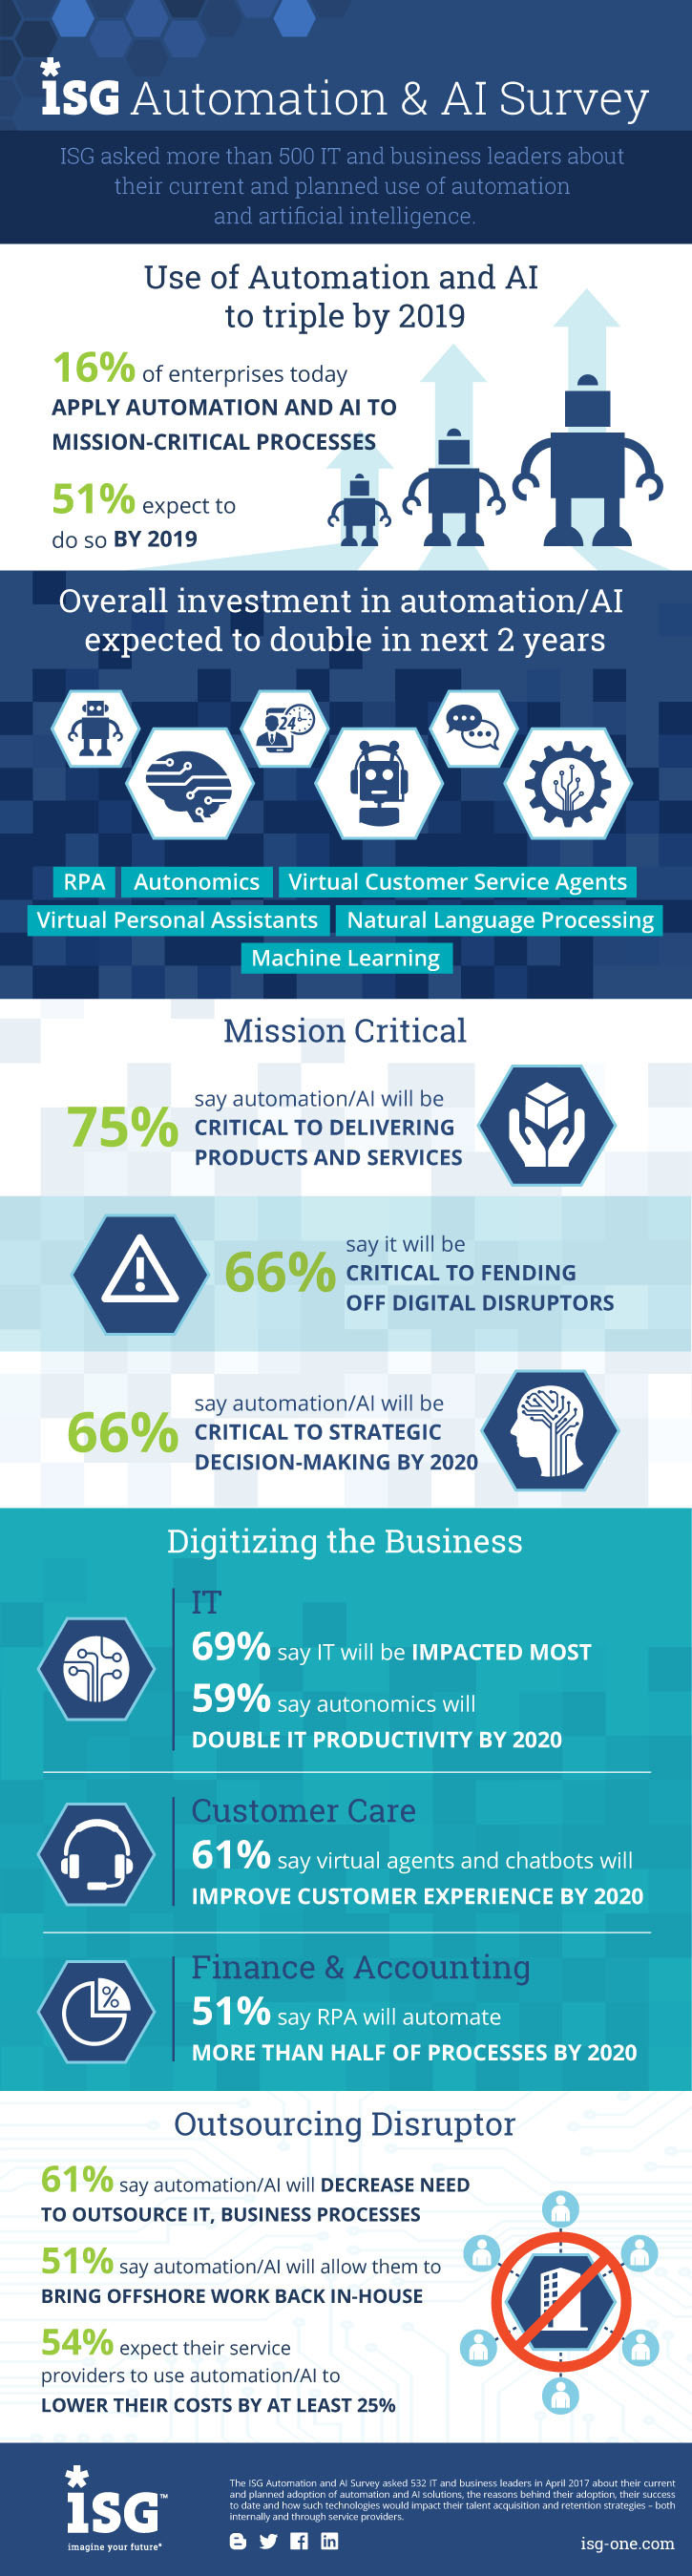 AI and Automation Critical to Delivering Products and Services